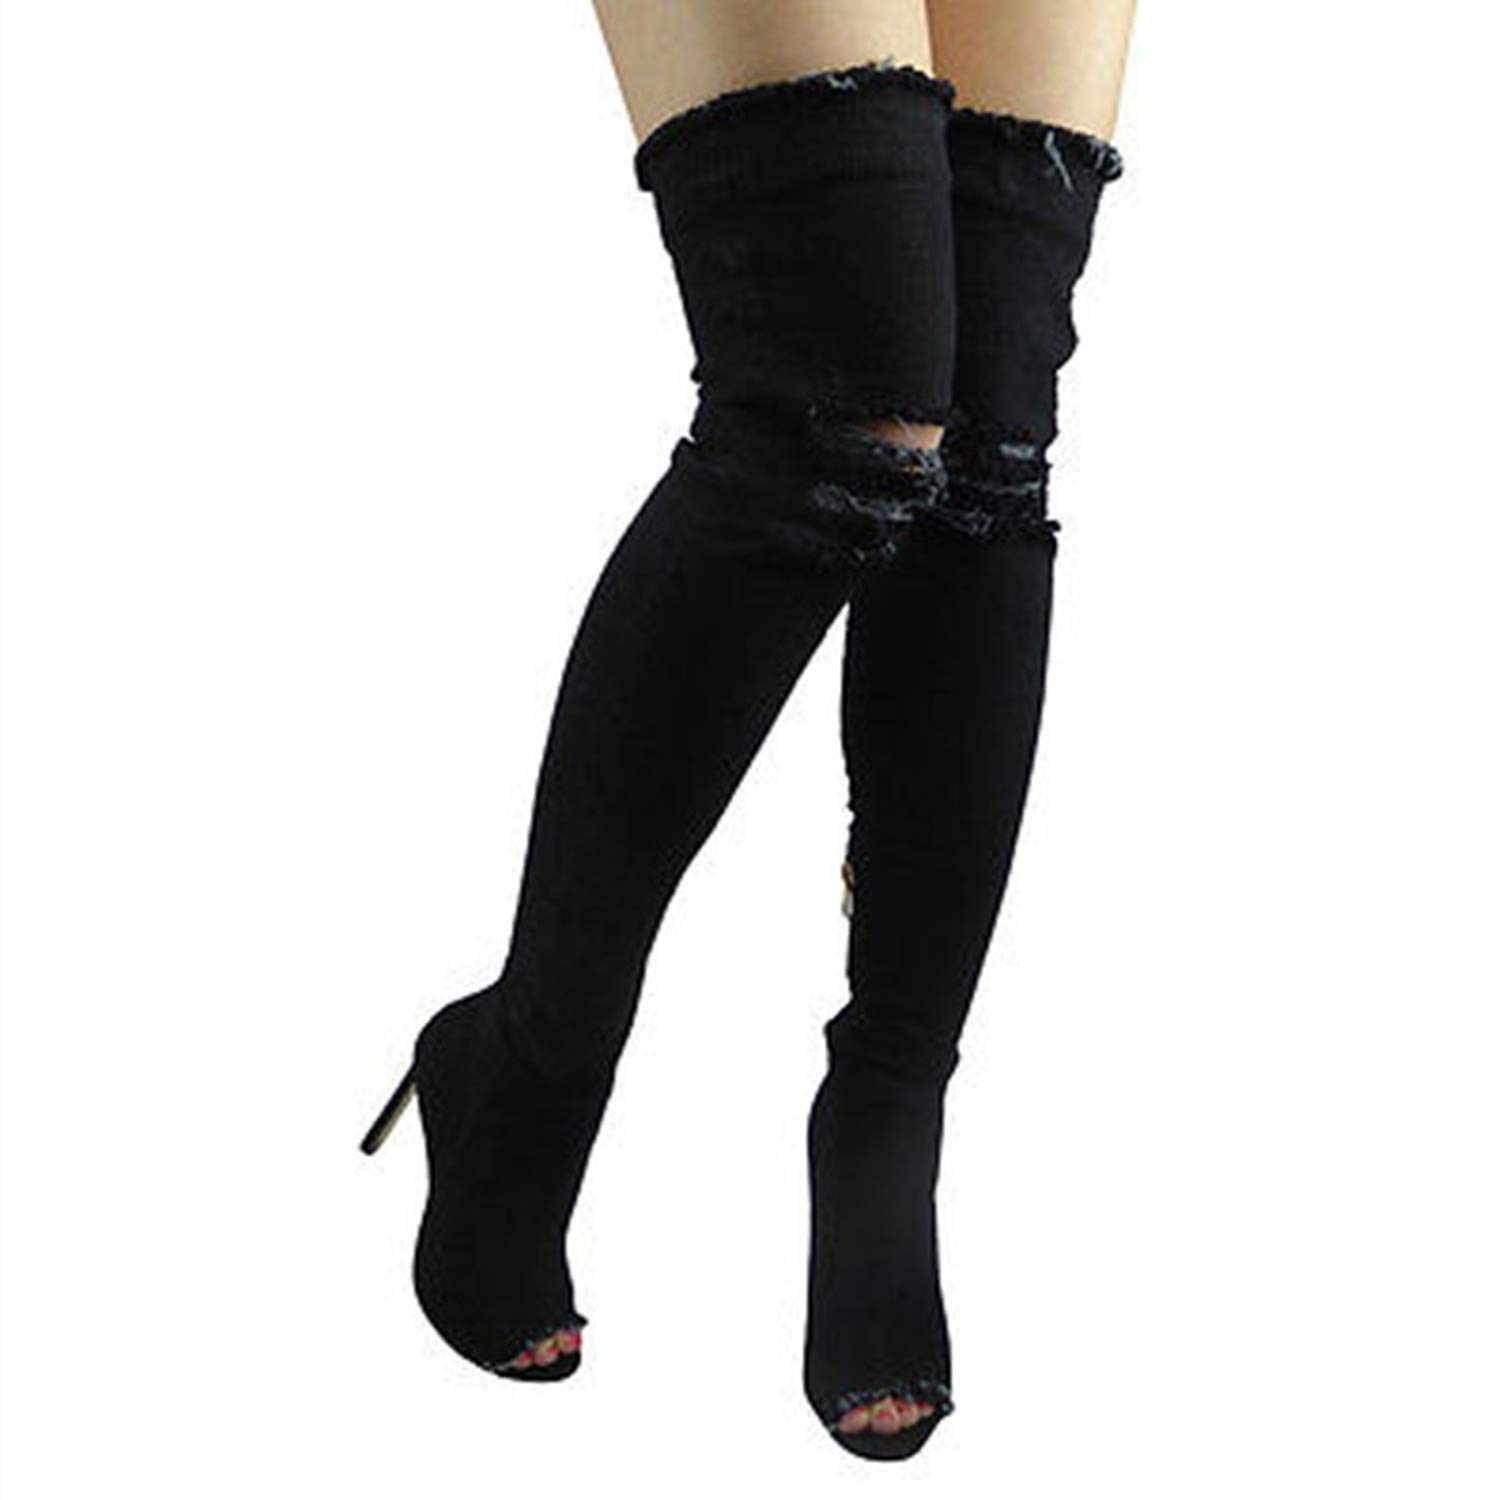 Black Women Sexy Stiletto Denim Over The Knee High Boots Zipper High Boots Women Peep Toe Pumps